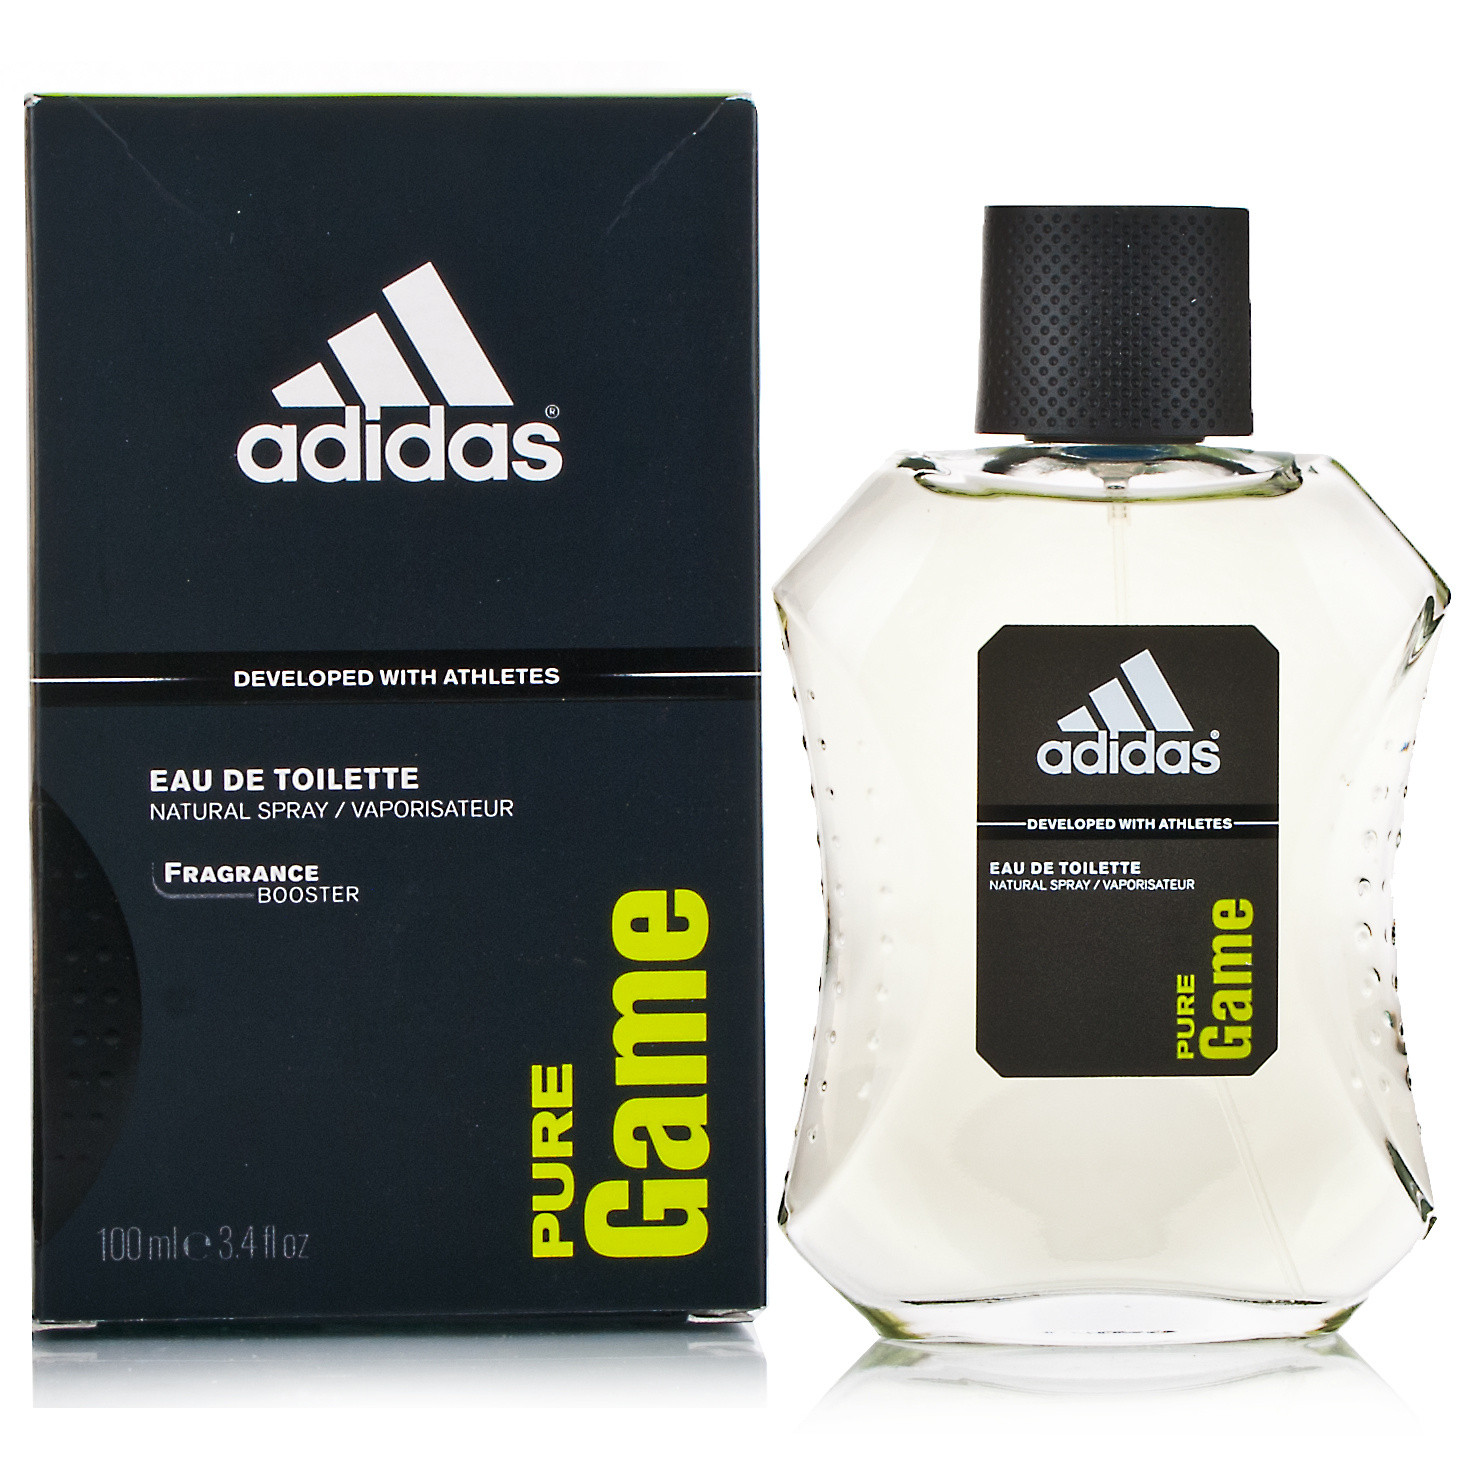 Buy ADIDAS PERFUME UNISEX 100ml Deals for only Rp102.300 instead of Rp200.000